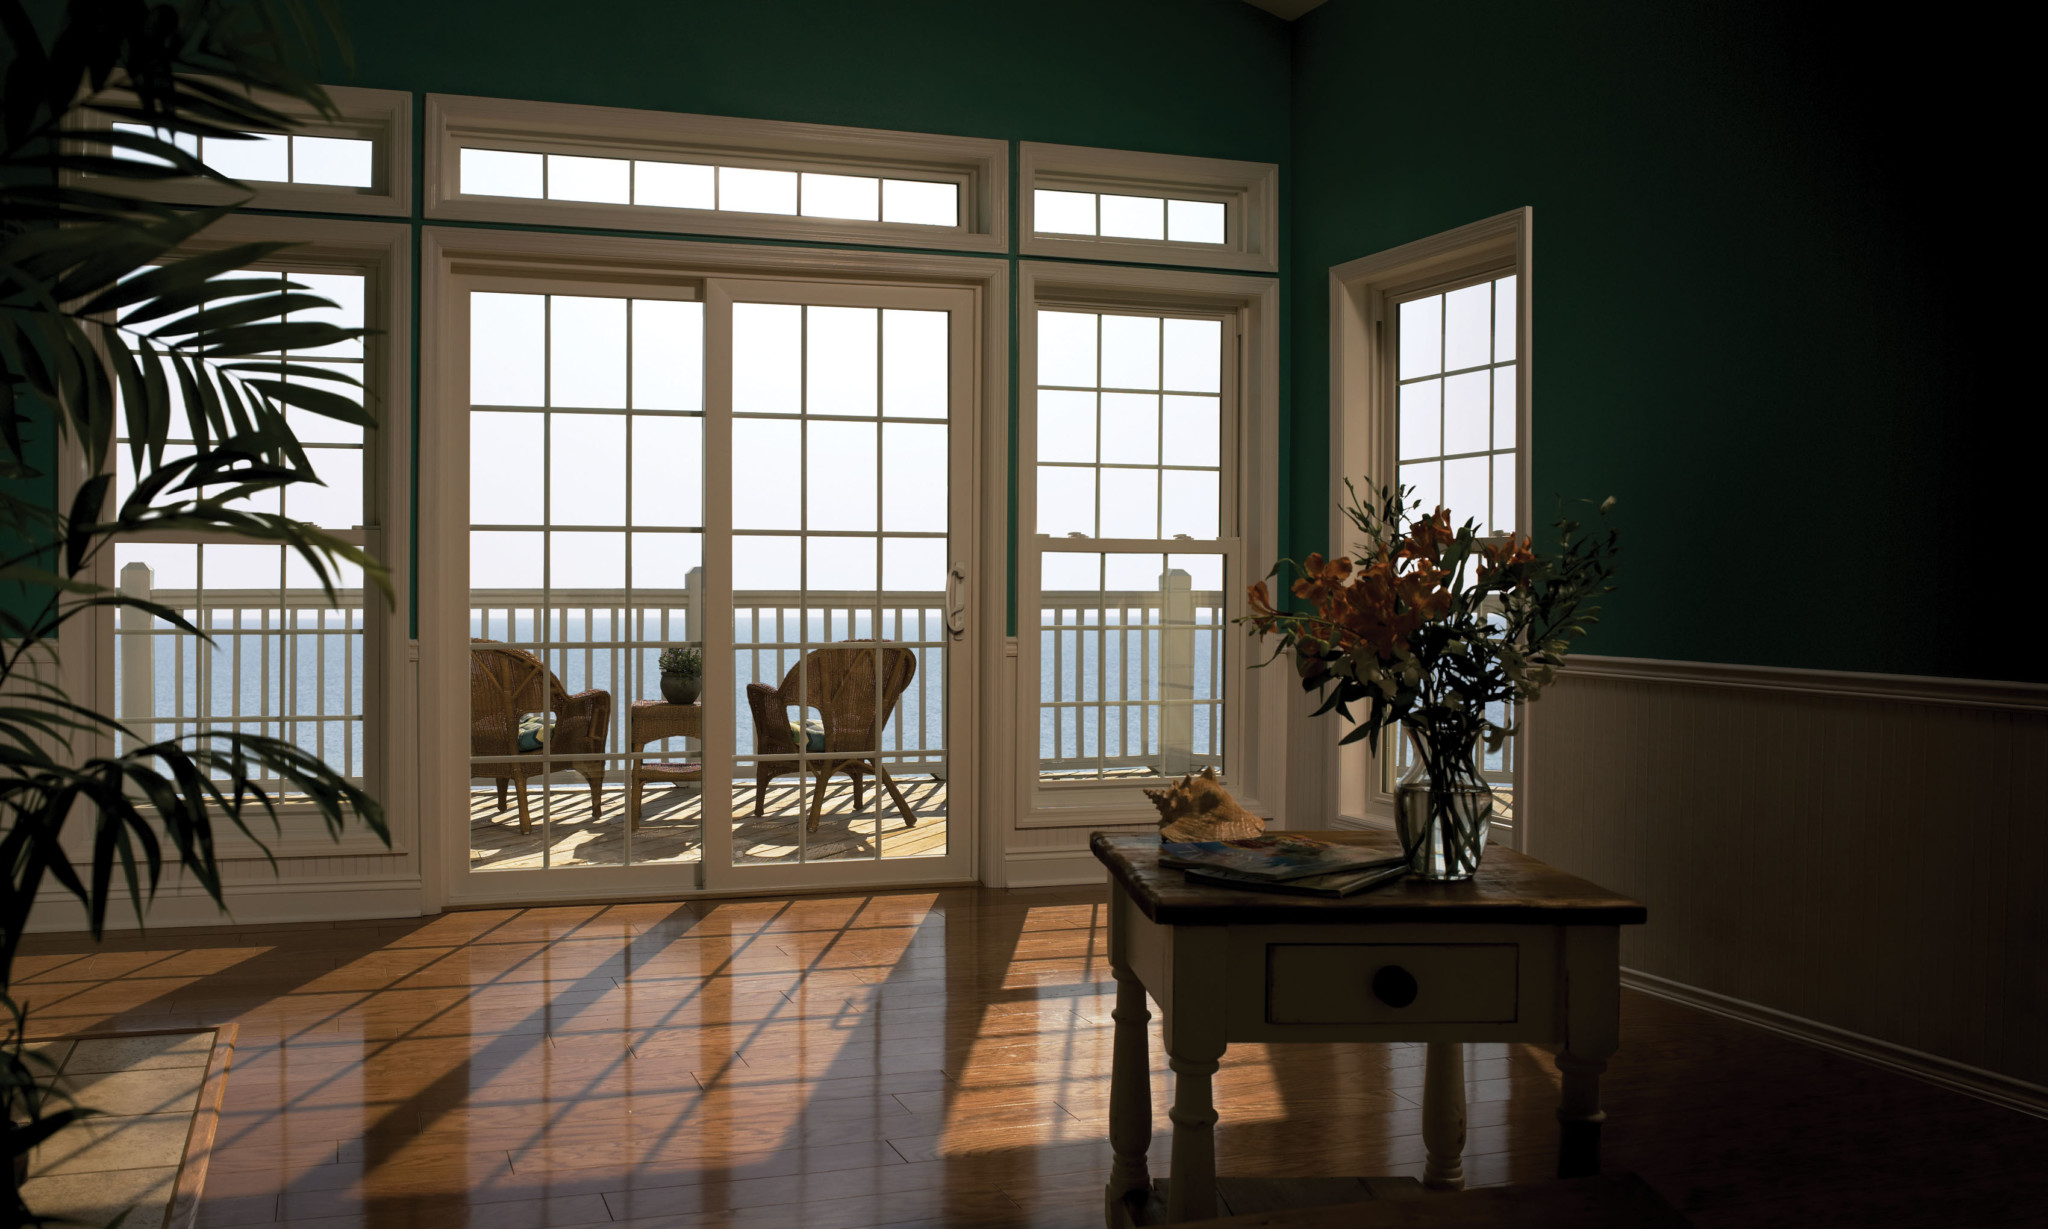 & Commercial and Residential Windows Doors Etc Florida Tampa Bay